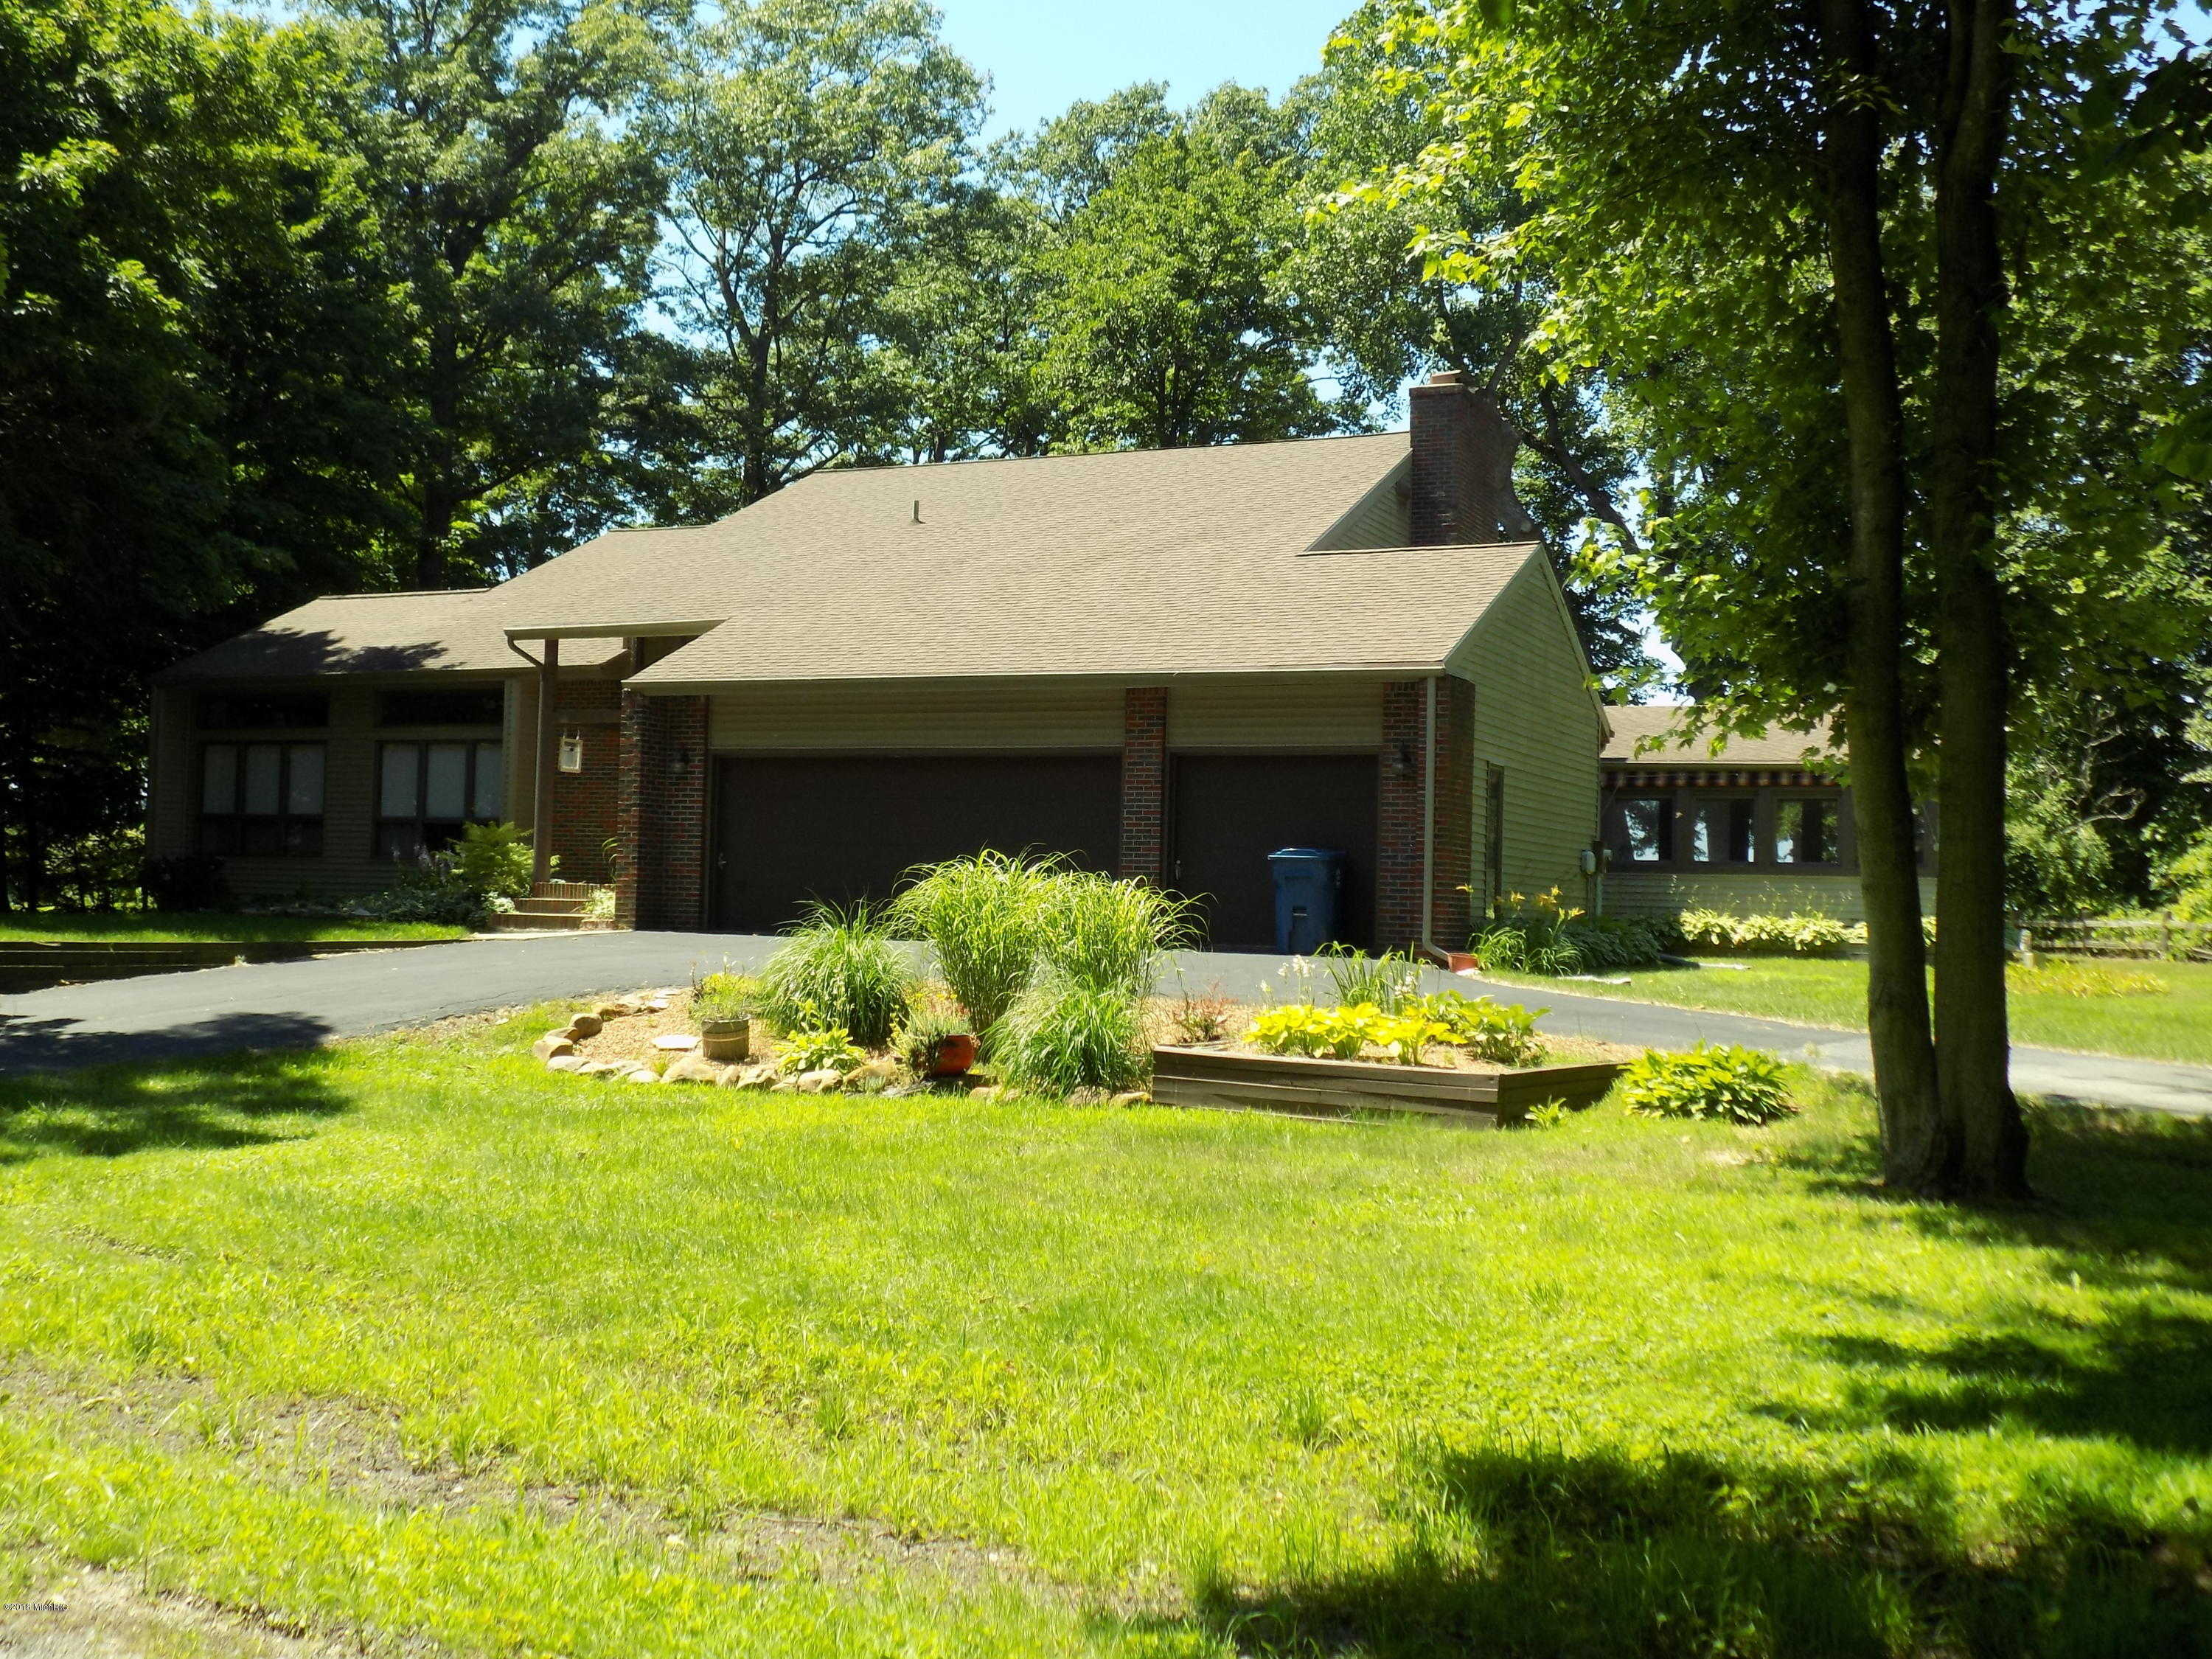 $1,190,000 - 3Br/3Ba -  for Sale in Benton Harbor